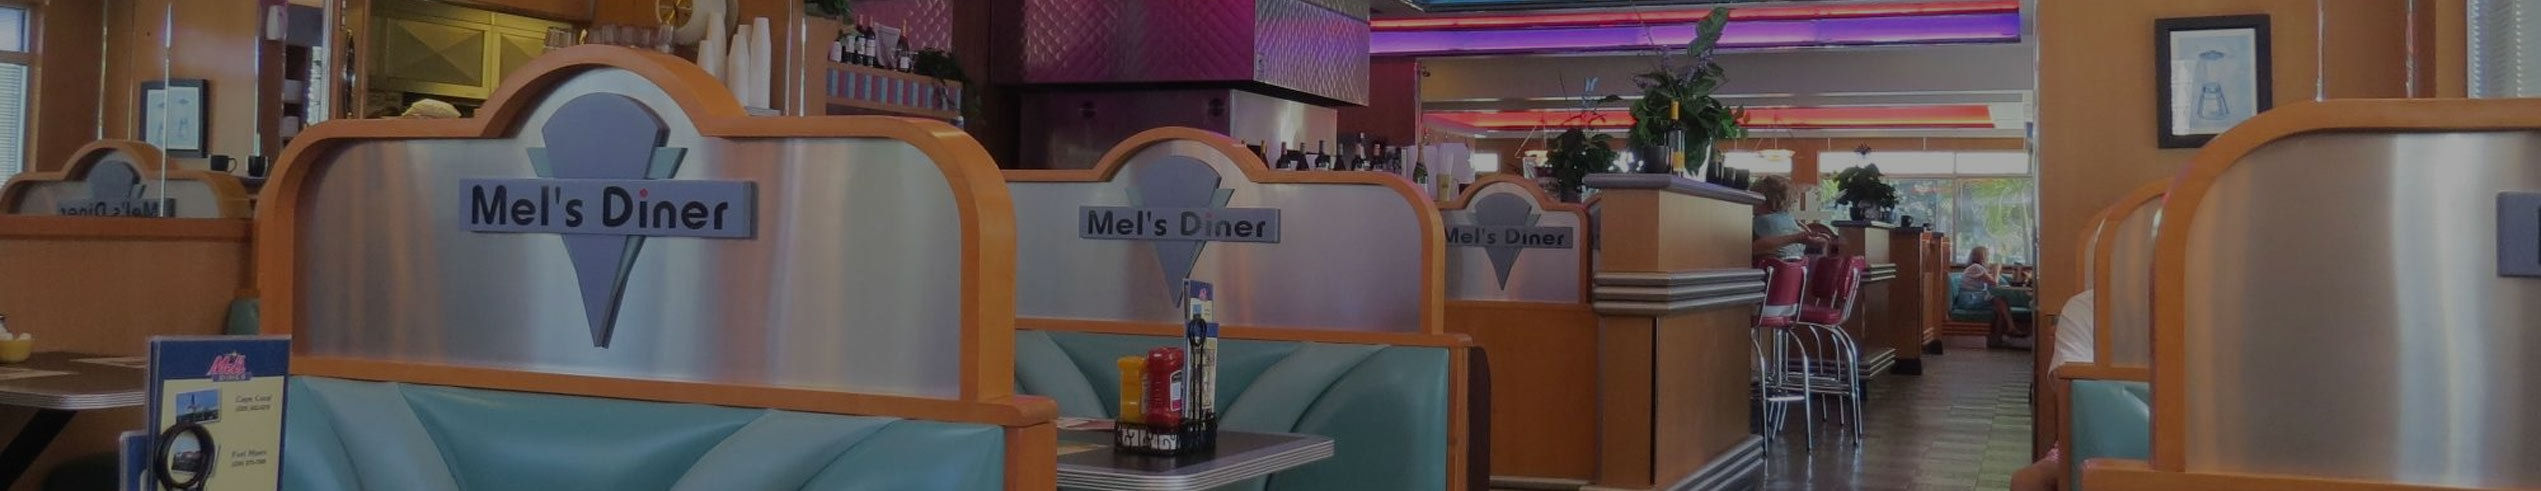 Interior of Bonita Springs Location | Mel's Diner - Southwest Florida's Classic American Diner